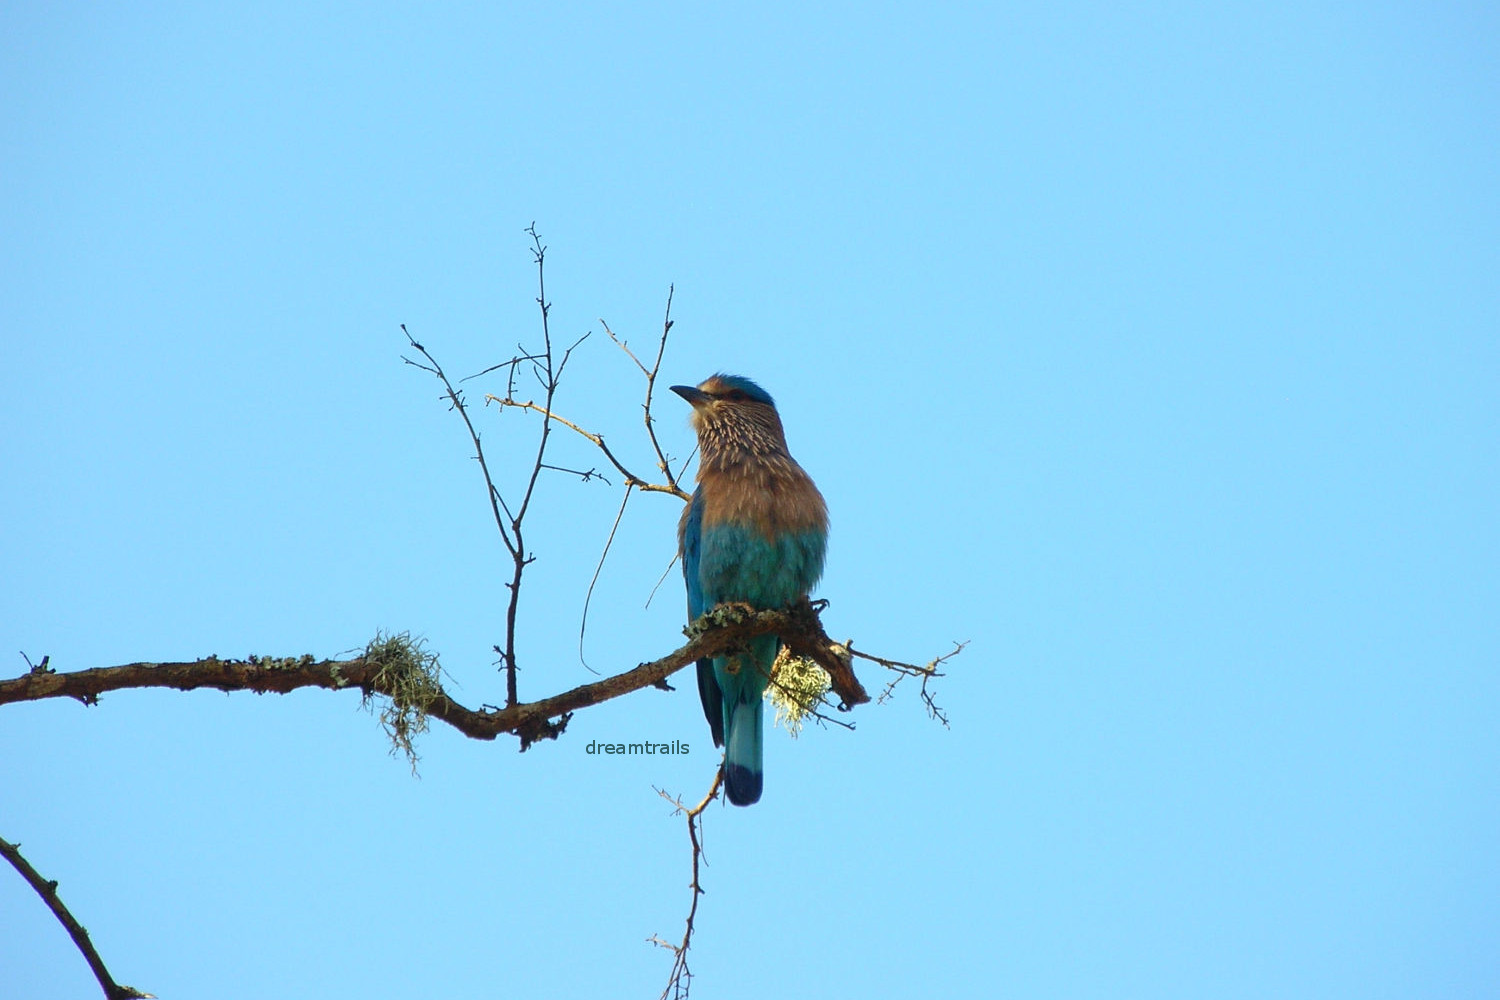 Indian Roller, Bandipur National Park, Karnataka